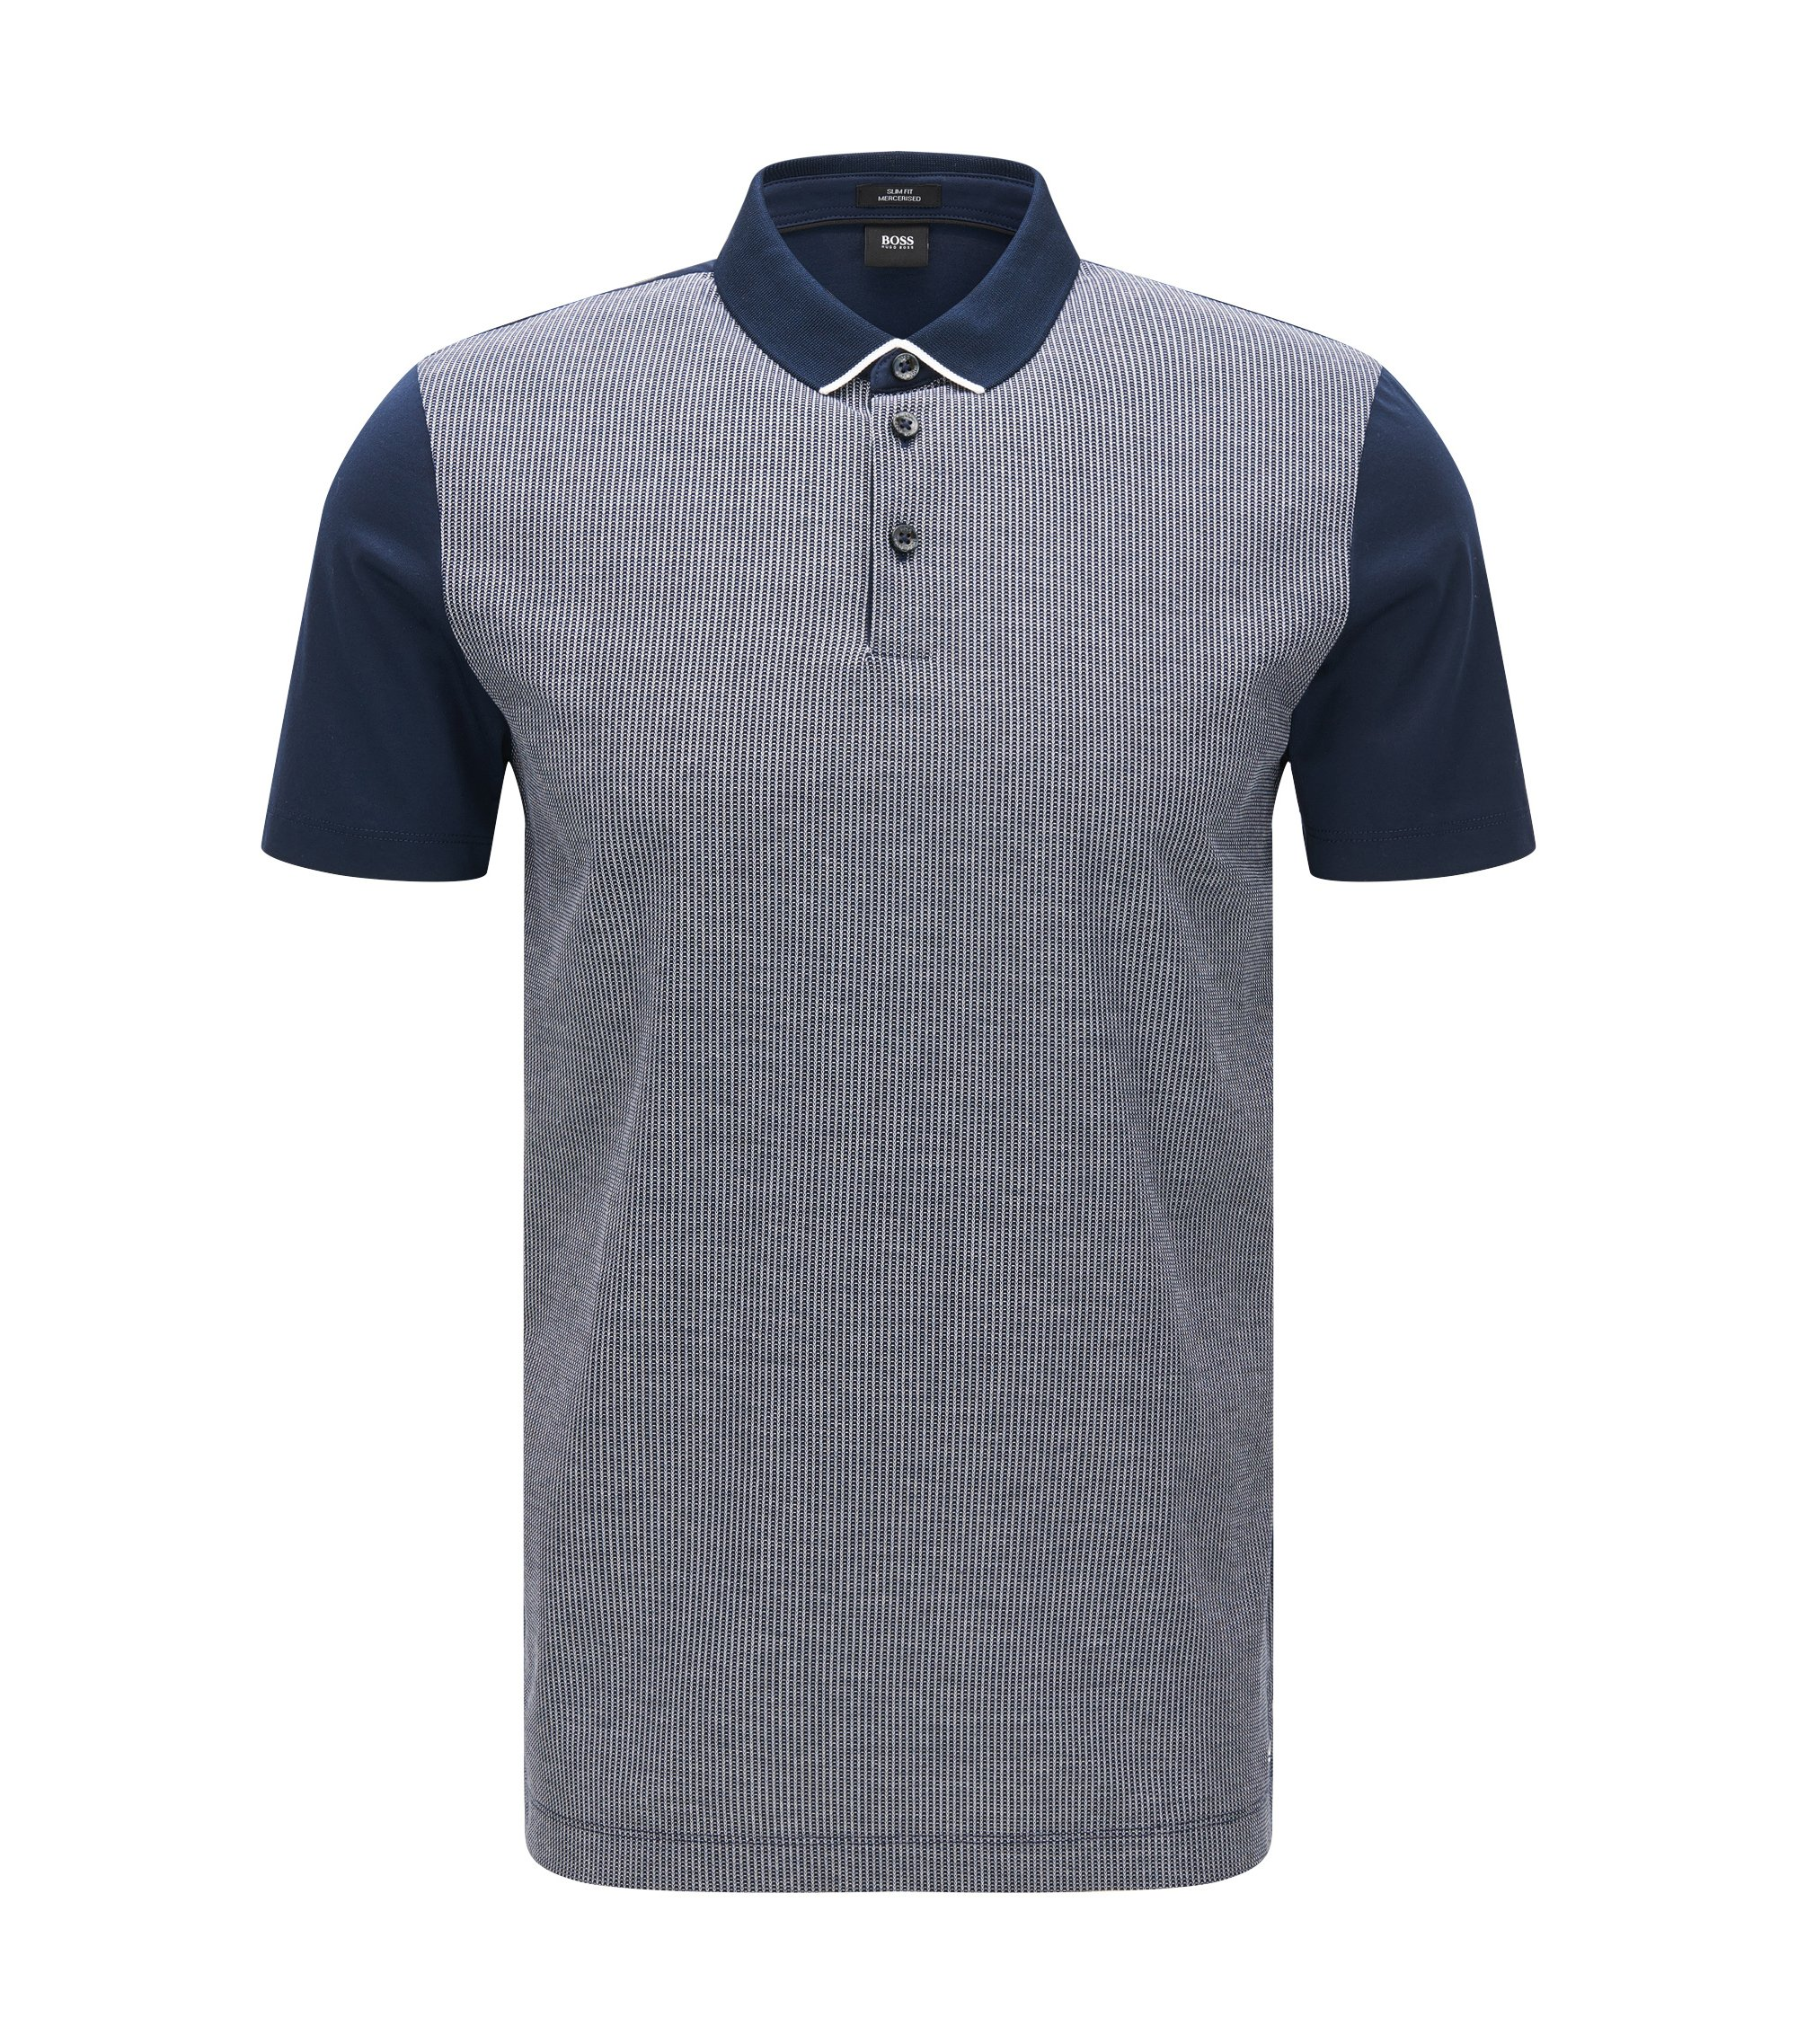 Striped Mercerized Cotton Polo, Slim Fit | Place, Dark Blue